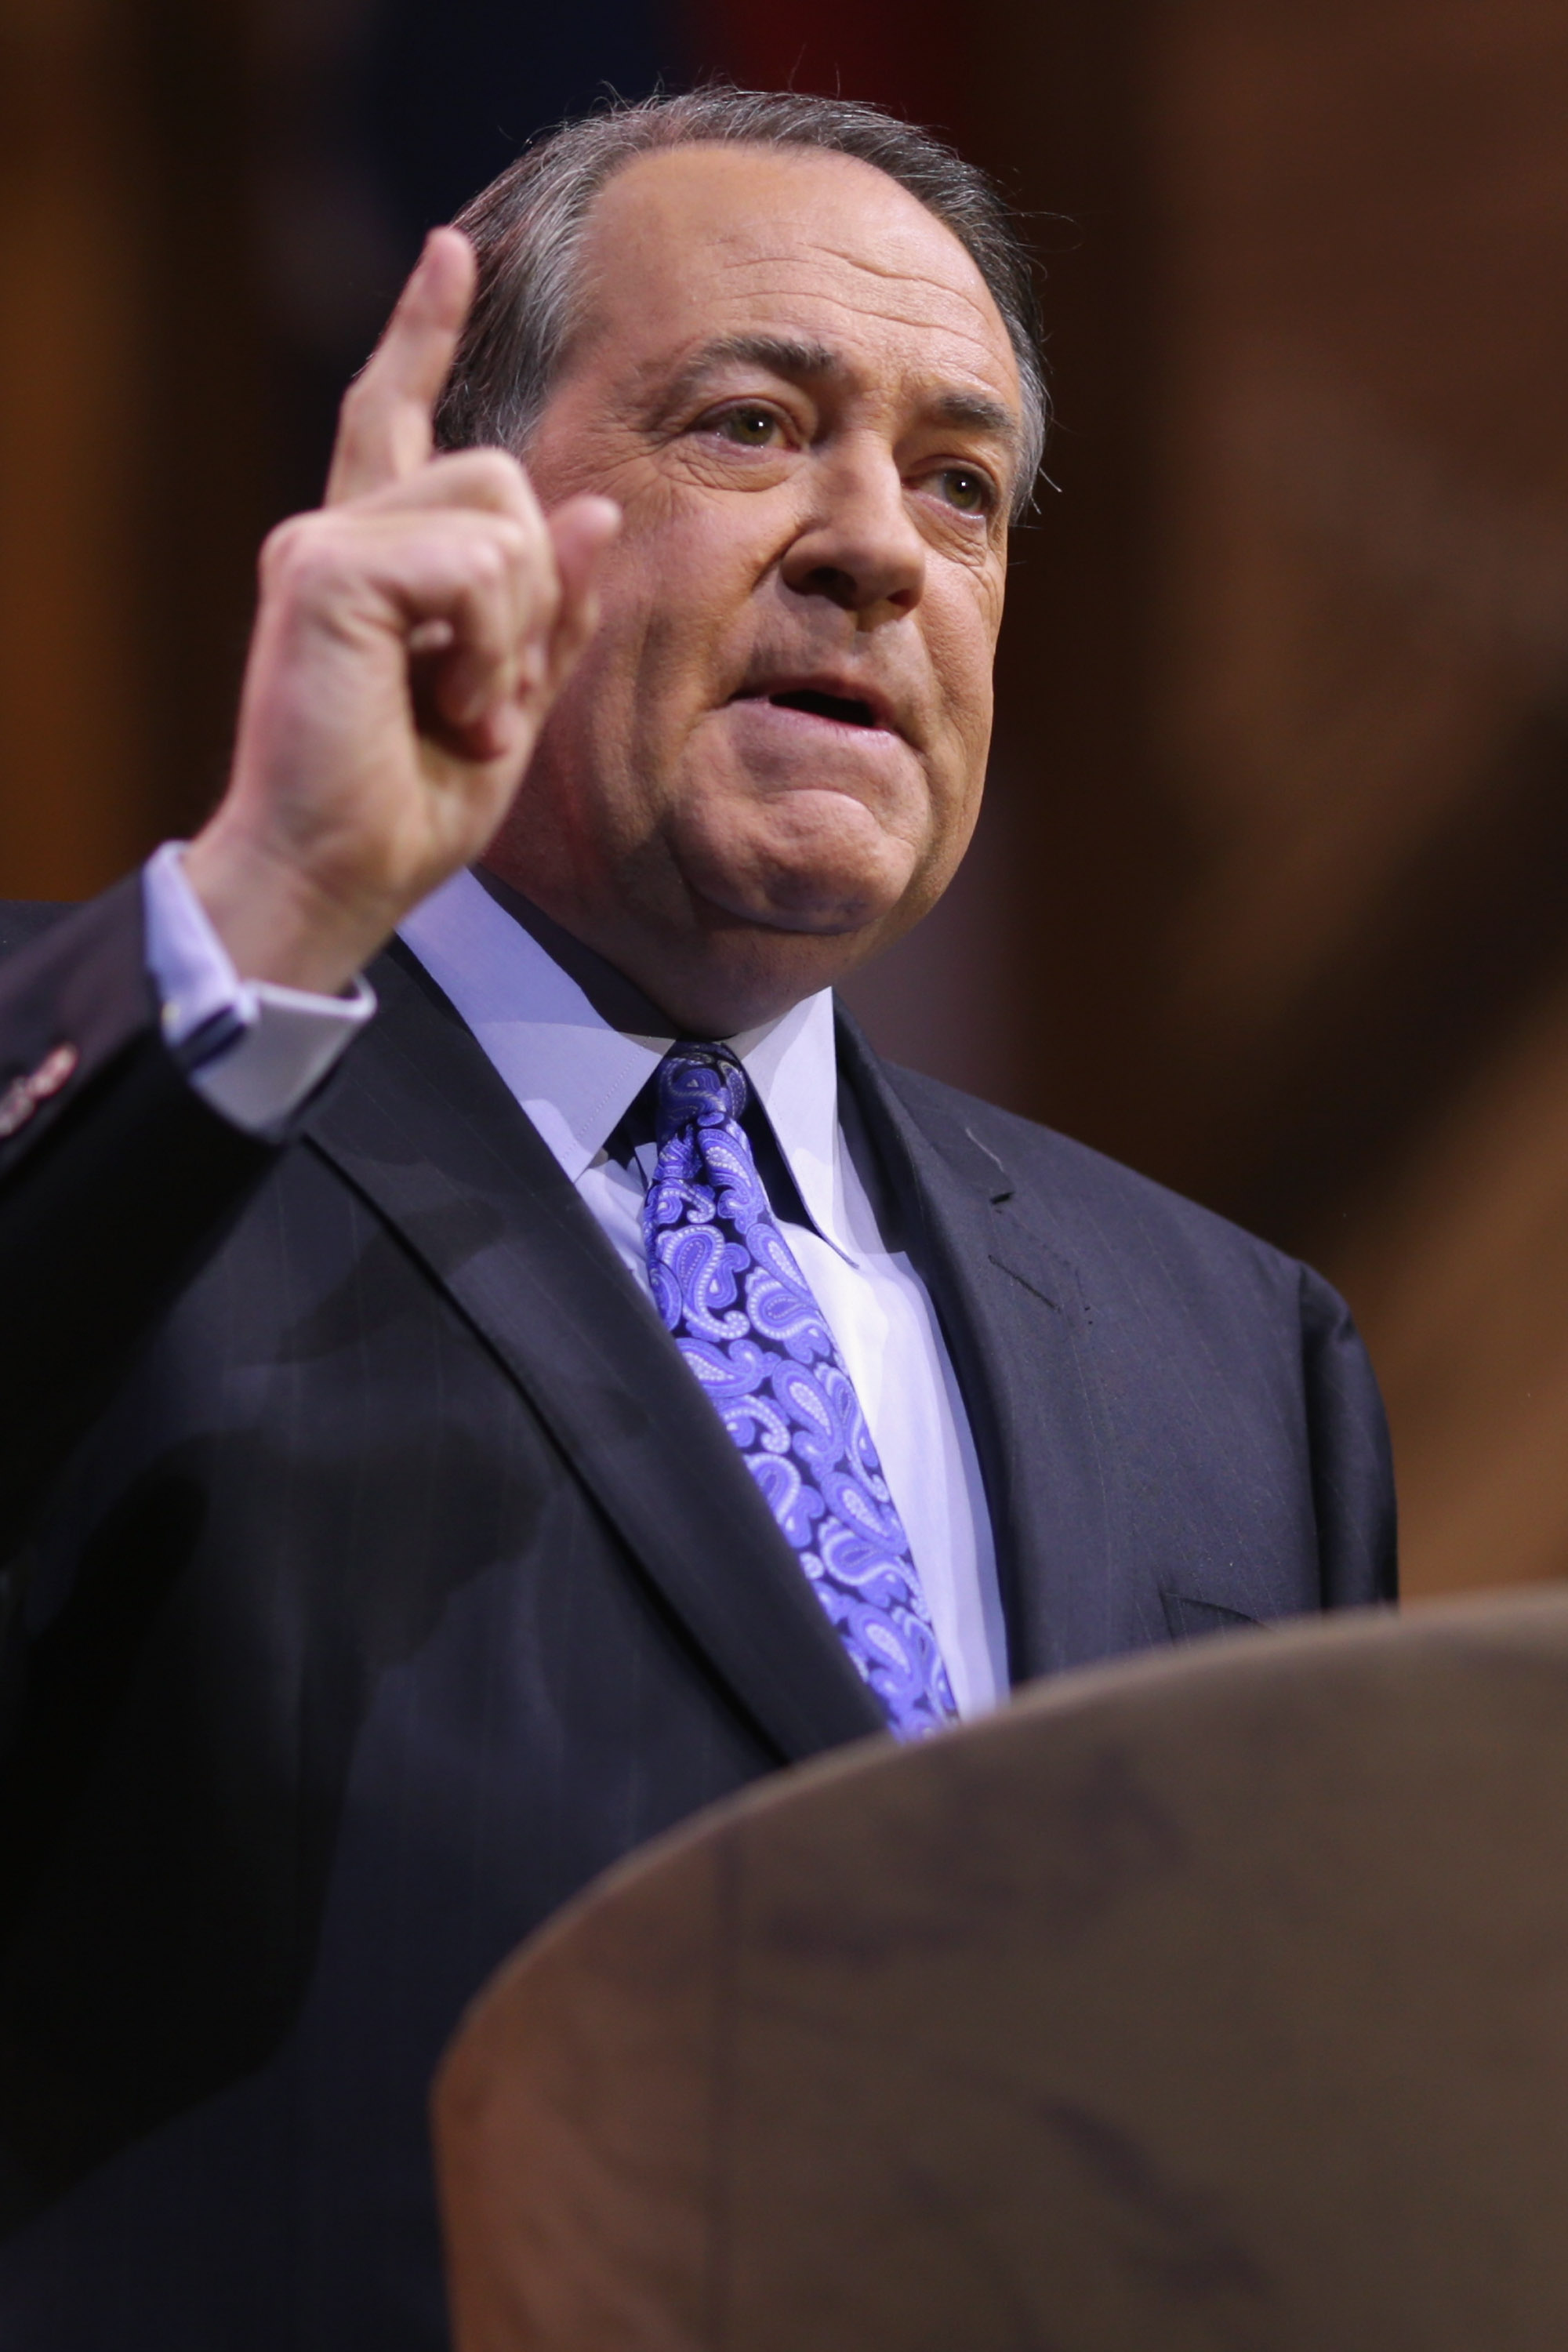 Former Arkansas Governor Mike Huckabee speaks during the second day of the Conservative Political Action Conference at the Gaylord International Hotel and Conference Center March 7, 2014 in National Harbor, Maryland.